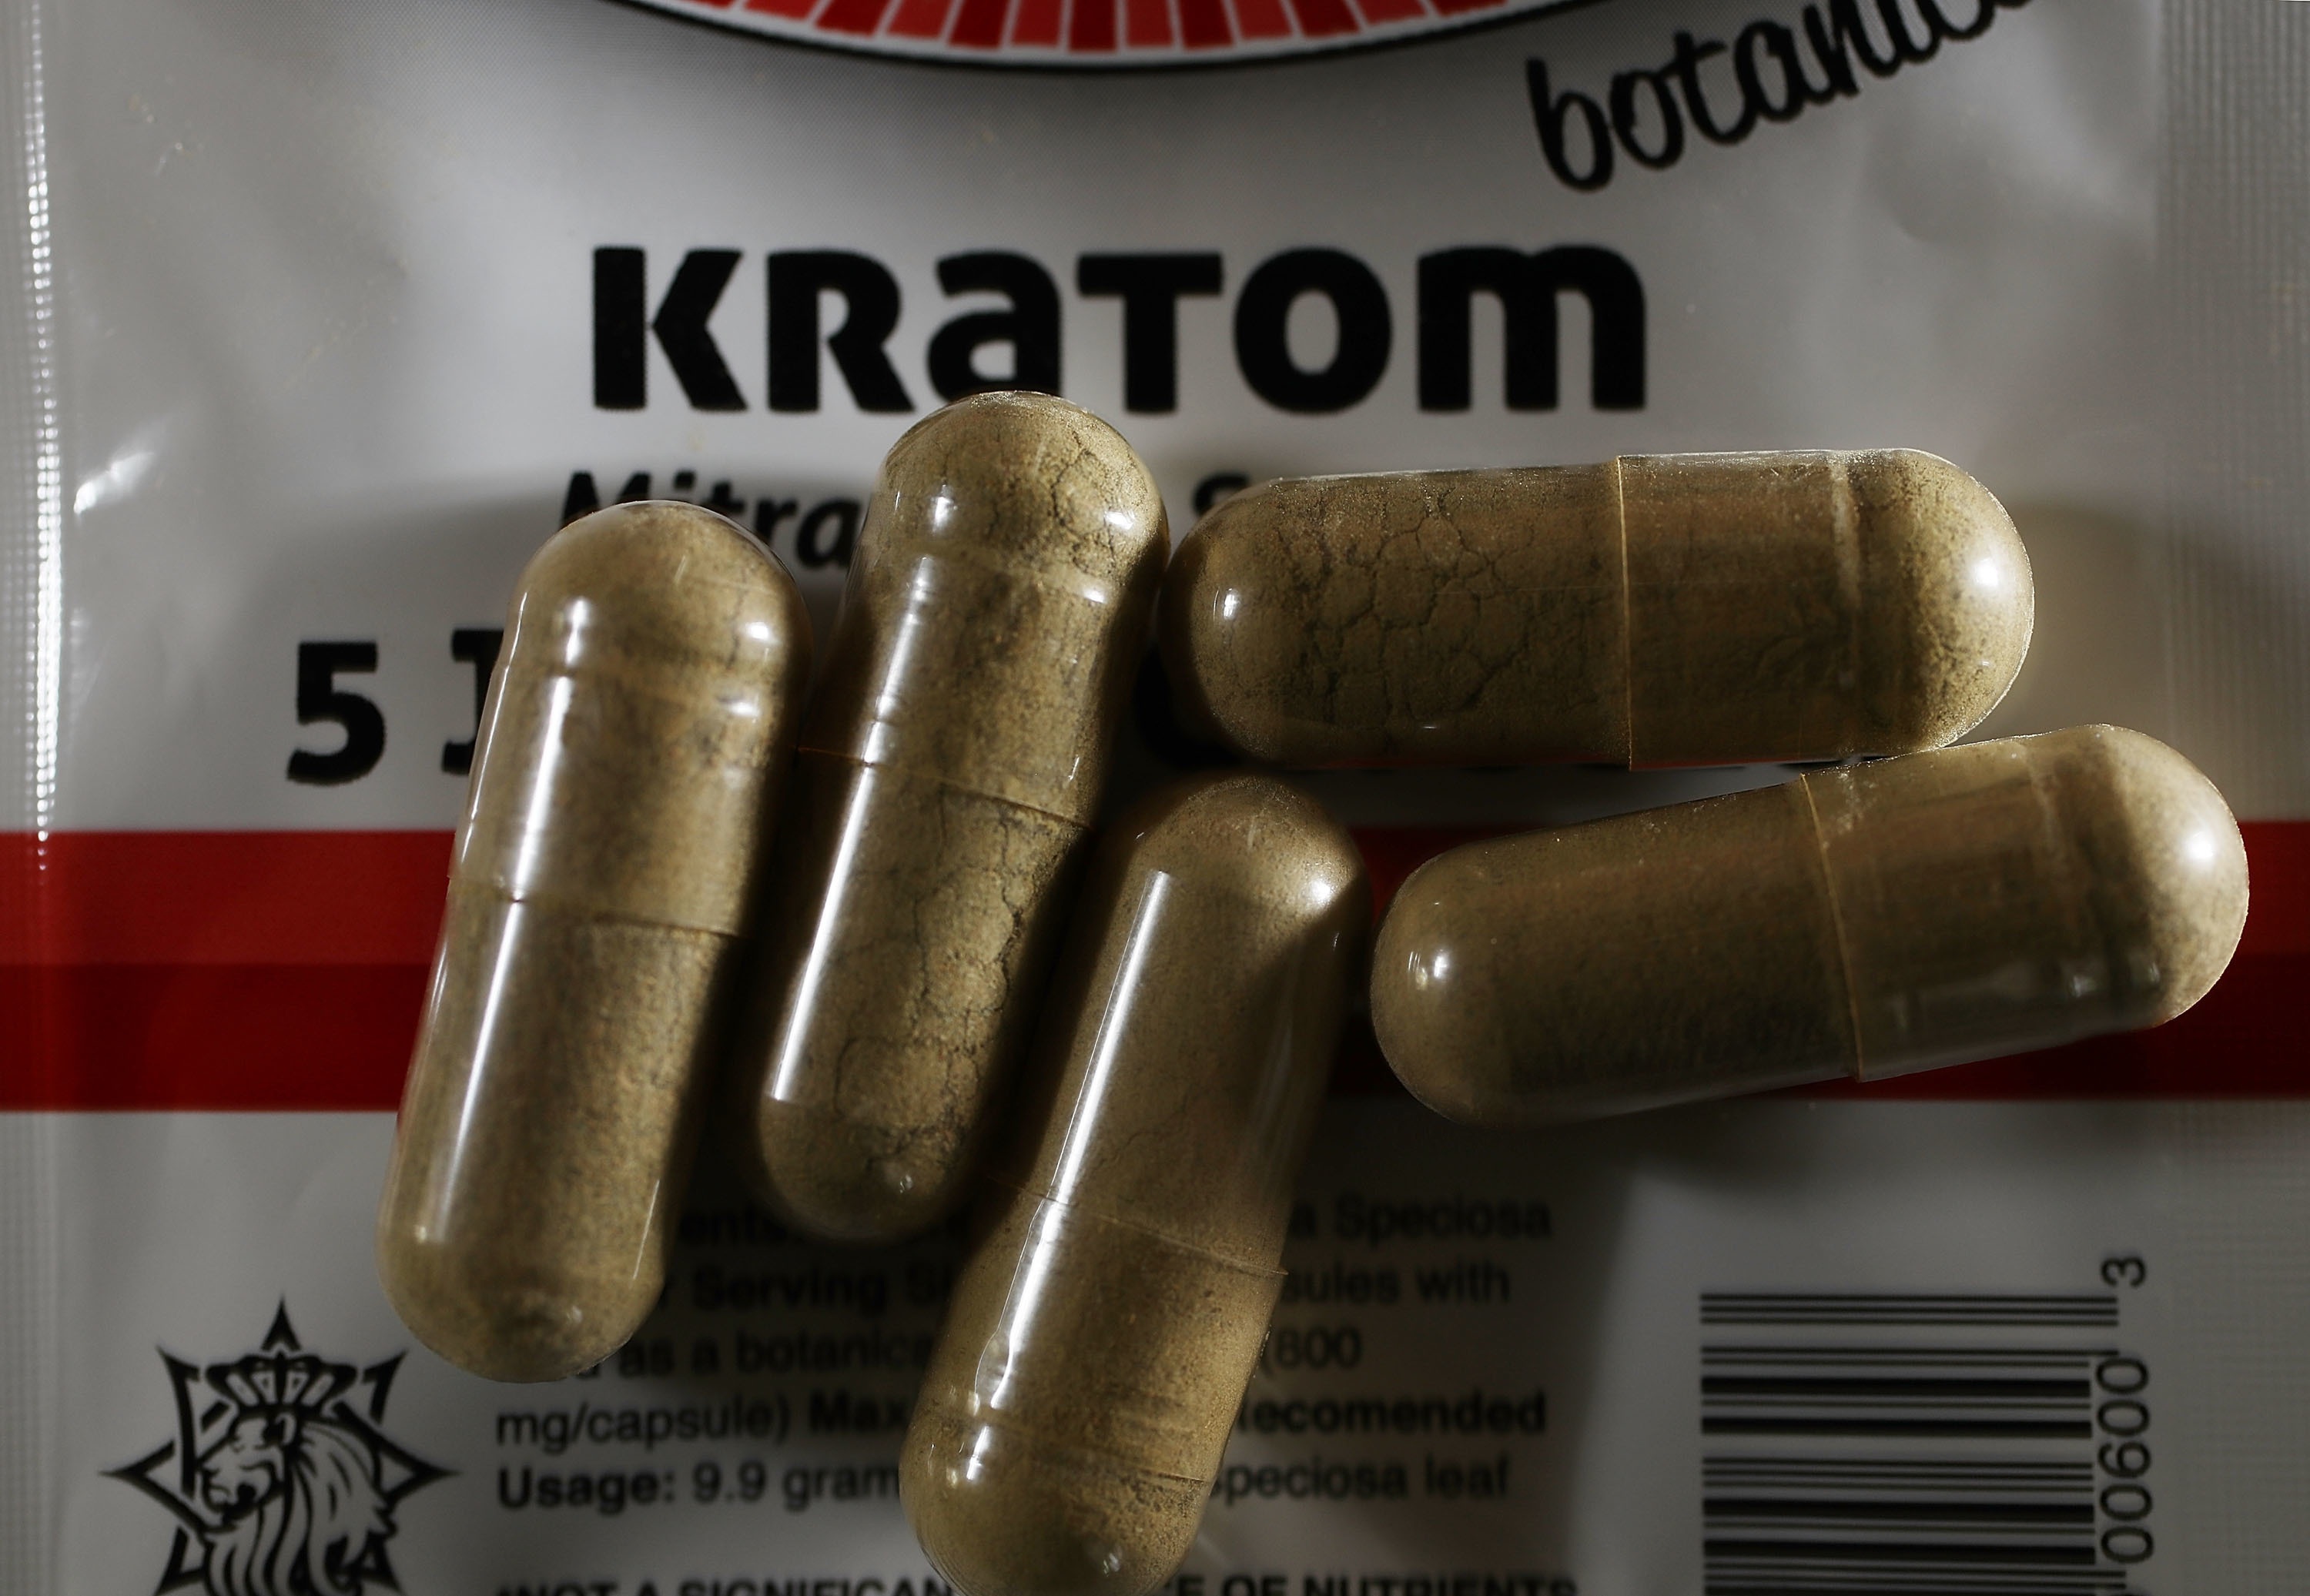 The purity and identity of kratom sold online isn't always guaranteed.